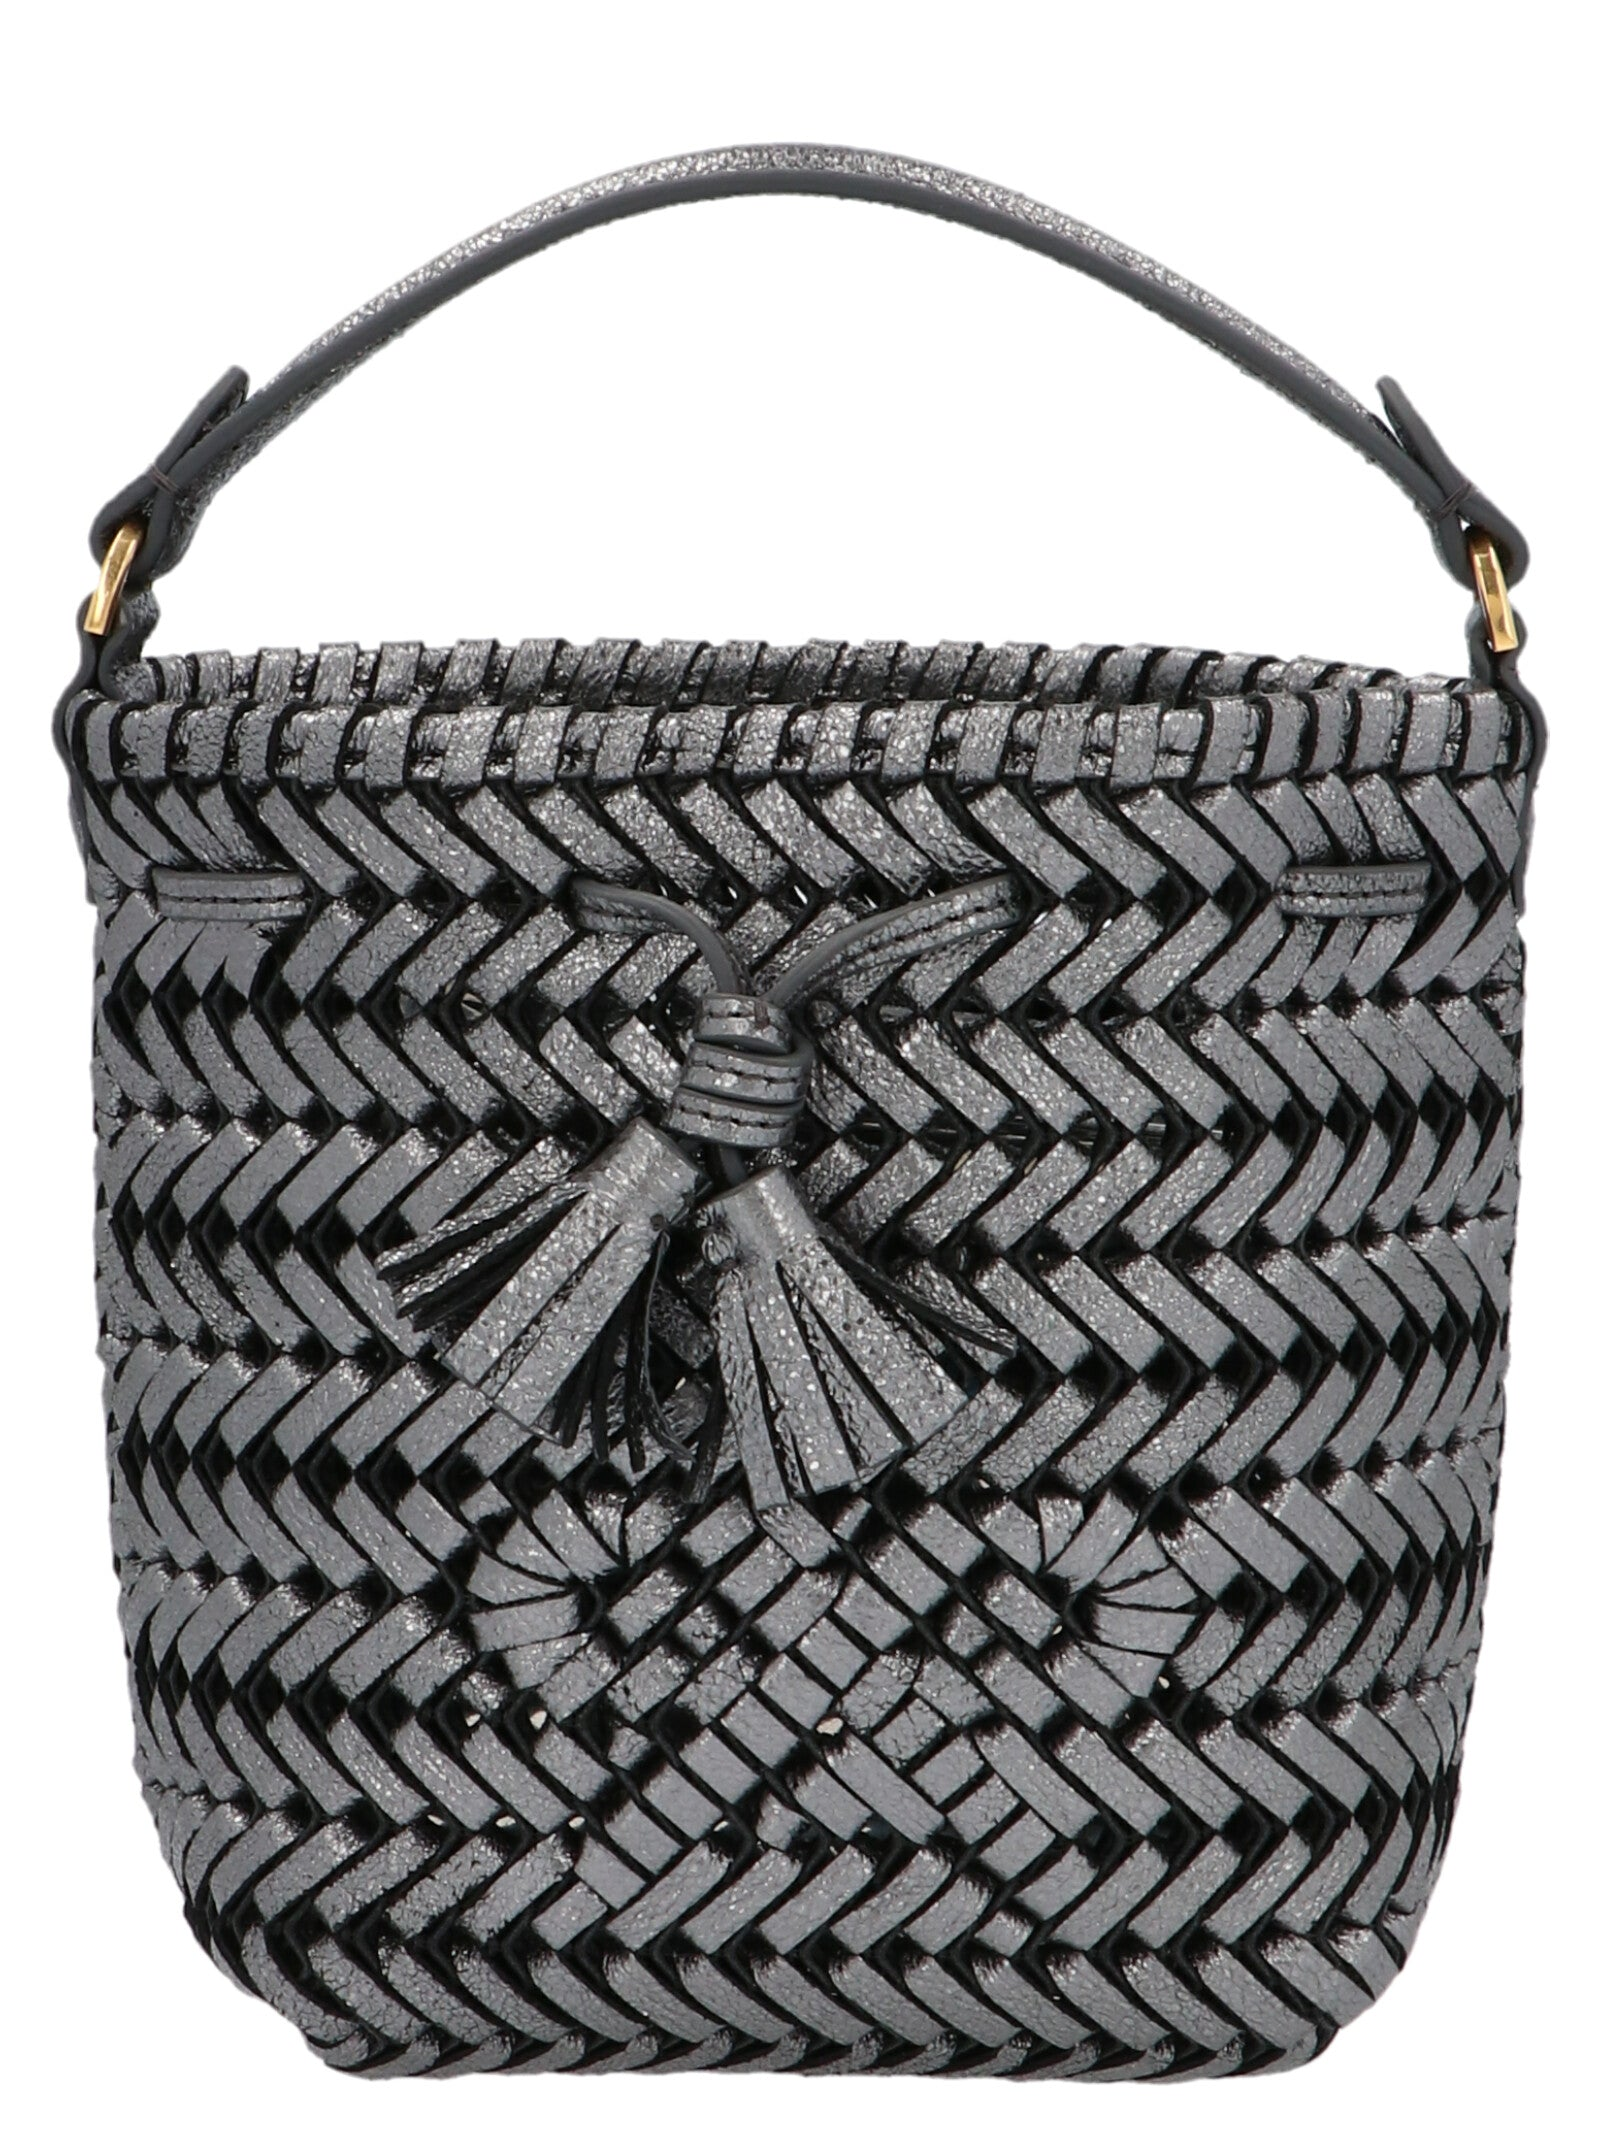 Anya Hindmarch ANYA HINDMARCH NEESON BUCKET BAG